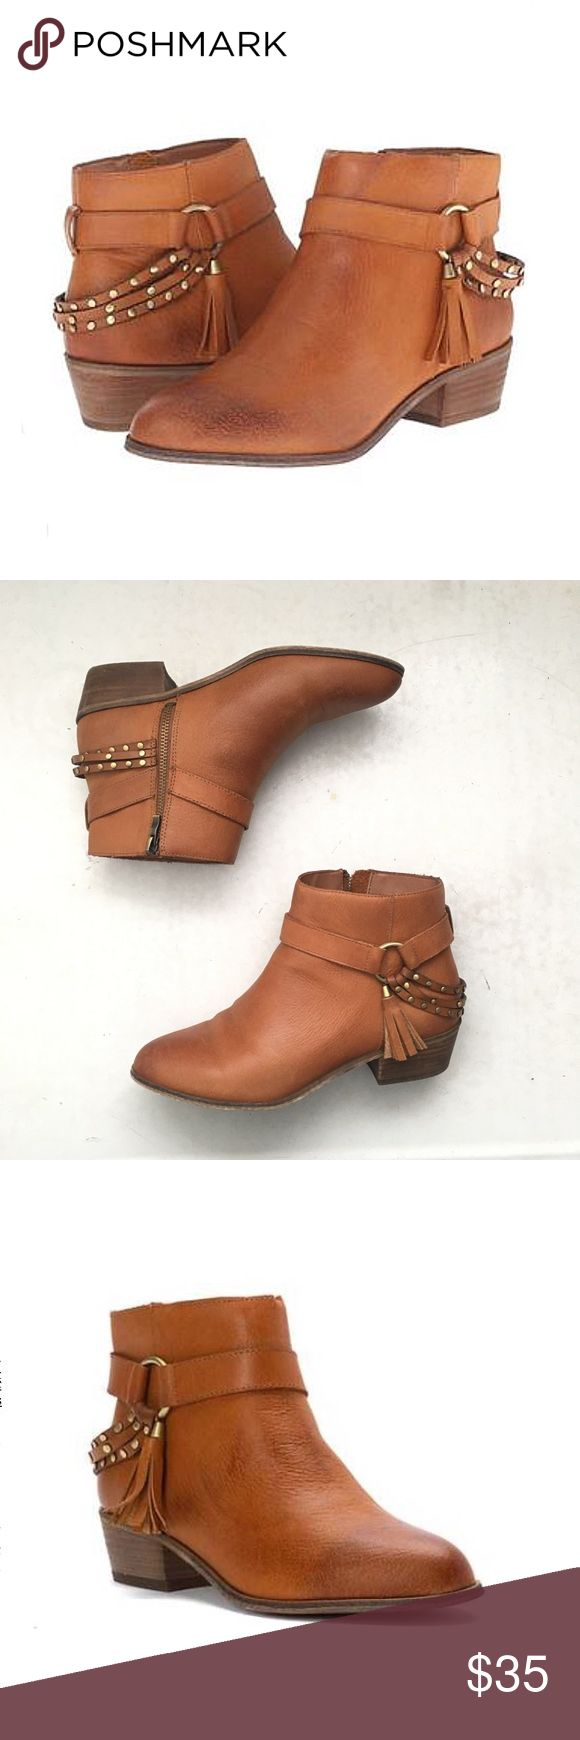 "Chinese Laundry | 'Seasons' Ankle Boot Cognac genuine leather ankle boots.  Stacked 2"" heel, manmade sole.  Harness ring, tassels, and stud detailing.  Inside zipper closure.  These are labeled size 9/40, and are a little bit roomy in the heel area with thin socks.  Fit comfortably with thick socks or also fit a size 9.5 snuggly.  Gently worn, in excellent condition. Chinese Laundry Shoes Ankle Boots & Booties"